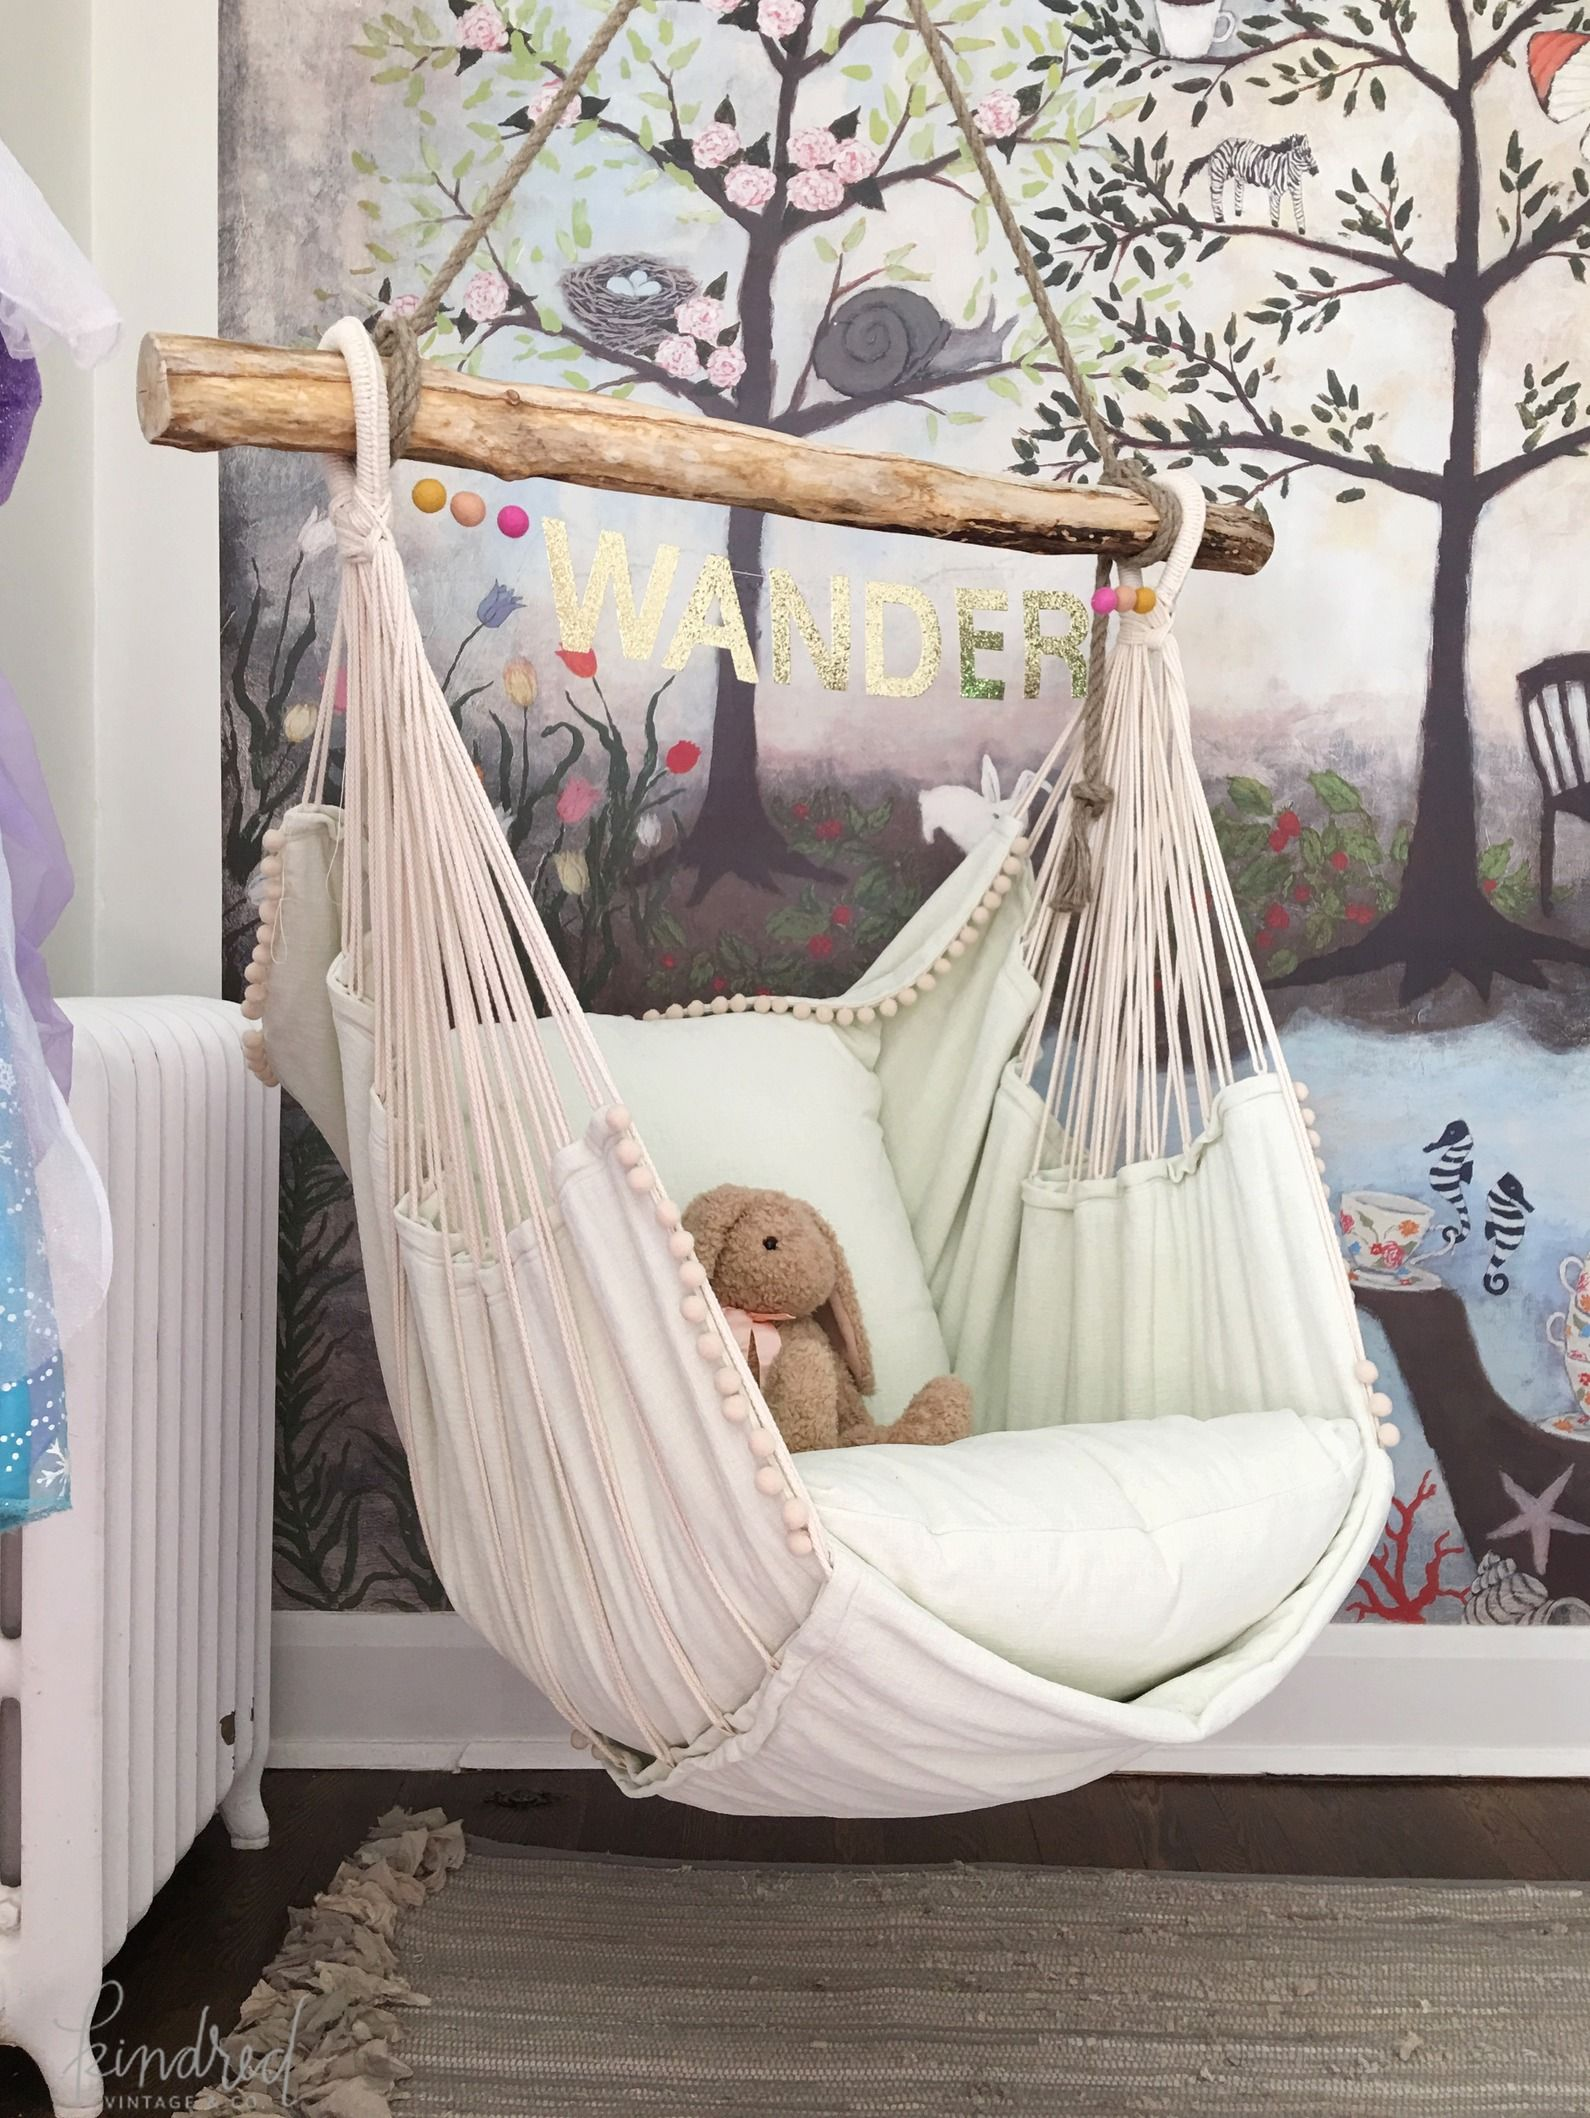 Kindredvintage co summer tour rustic decorating ideas for Diy bedroom hammock